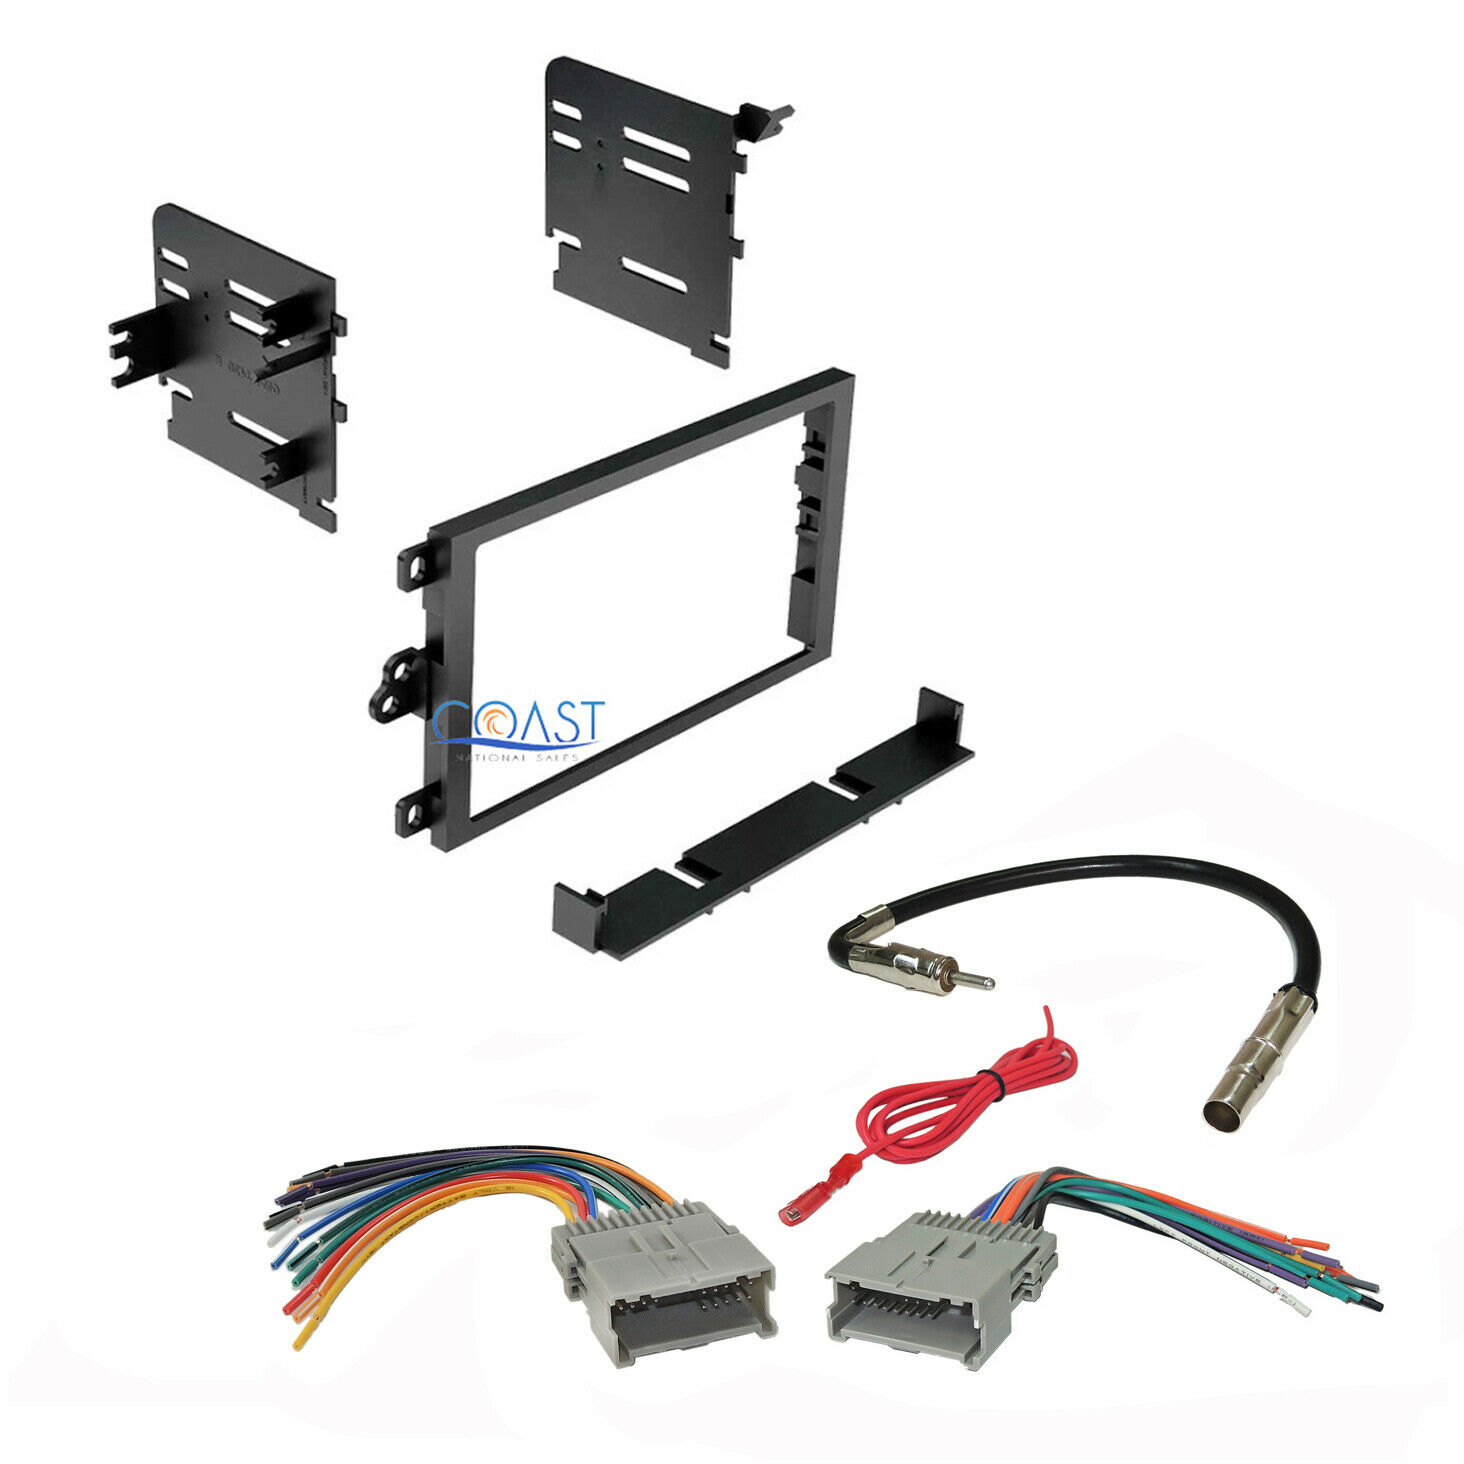 Car Stereo Double Din Dash Kit Harness Antenna For 1992 Up Chevy Gmc Kenwood Audio Touch Screen In Addition Monte Carlo Wiring Diagram 1 Of 4free Shipping